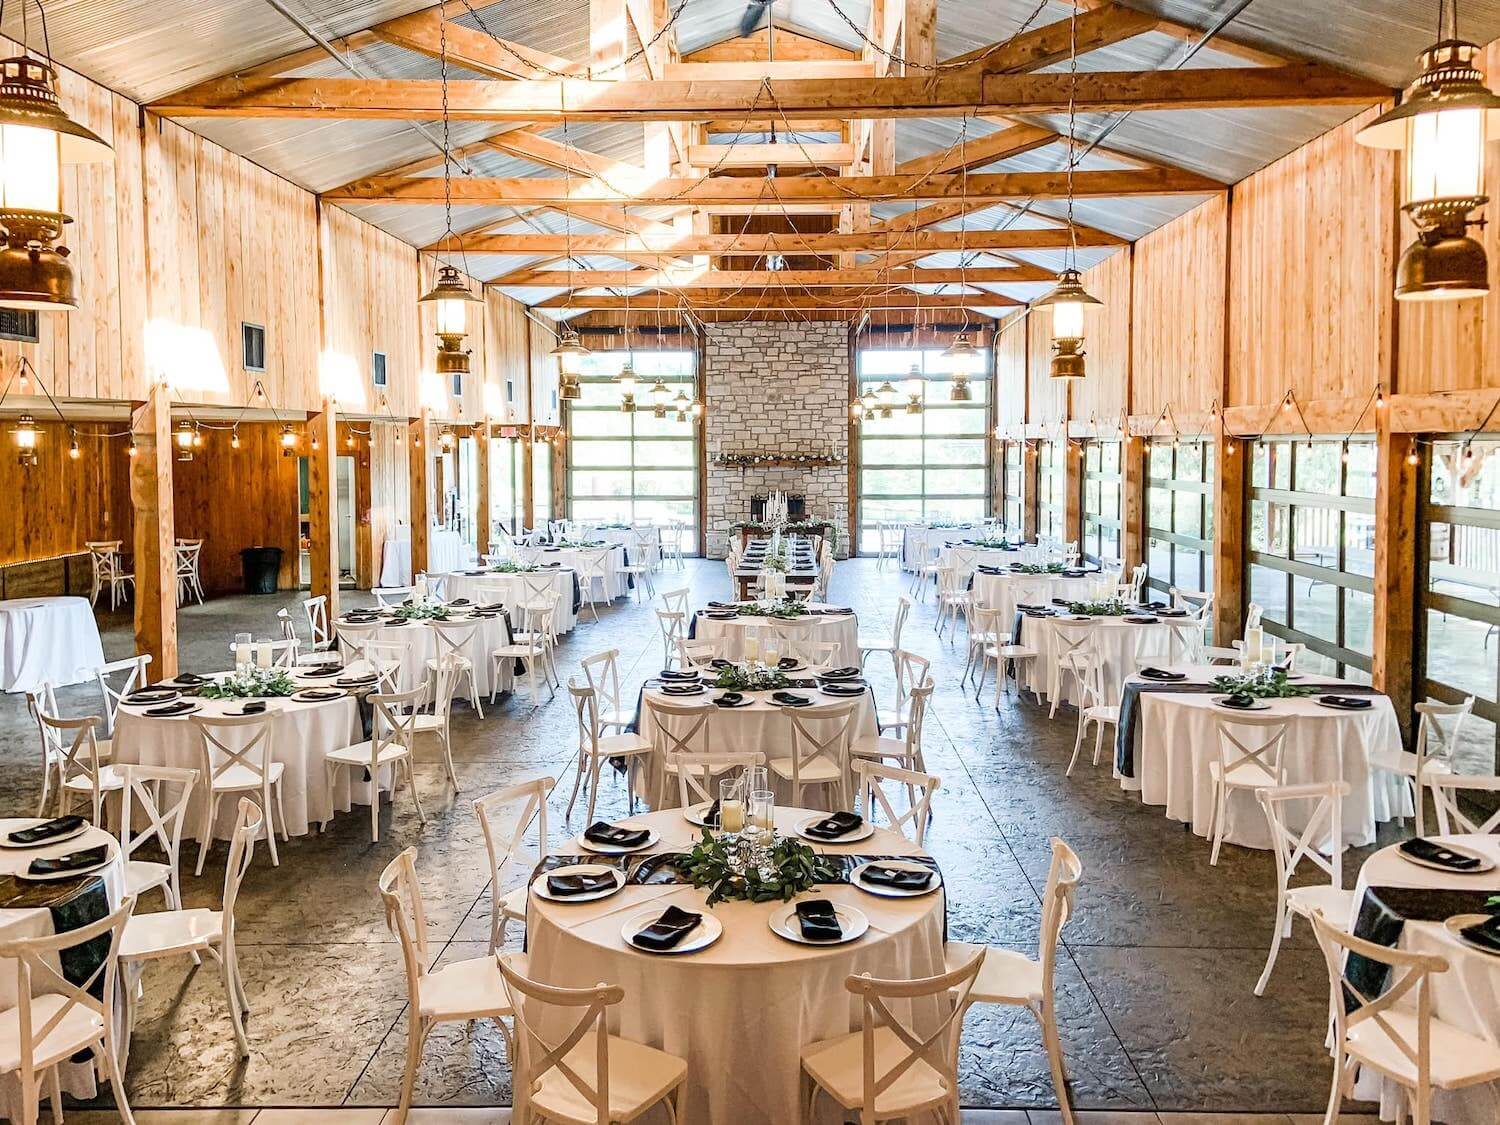 haue valley outdoor wedding venues st louis